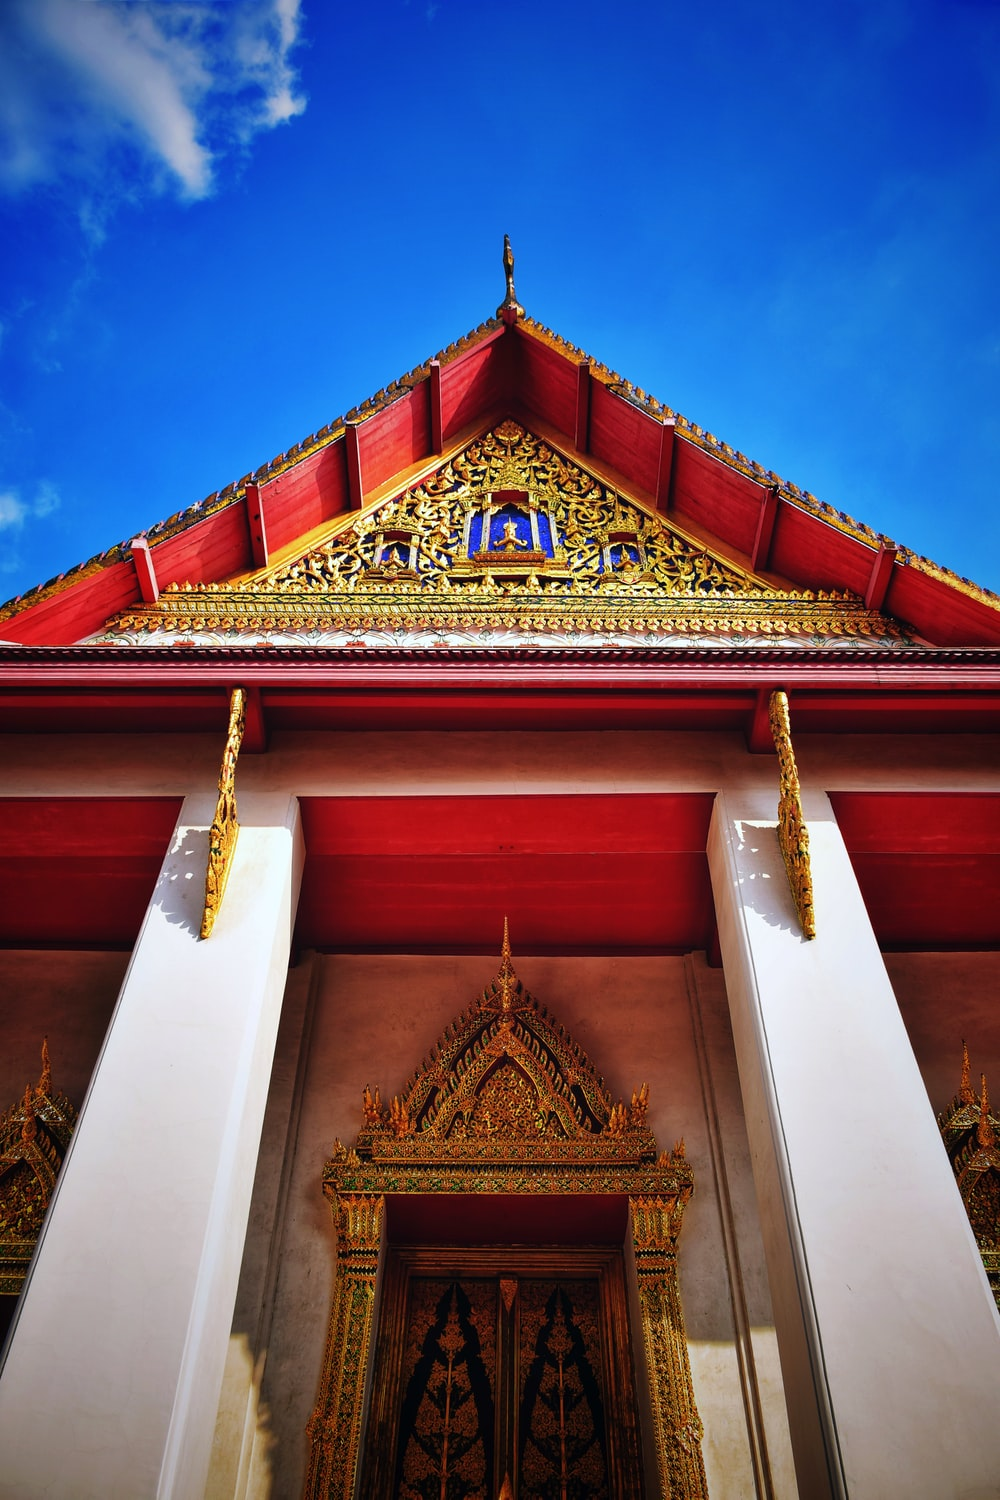 low-angle photography of red and gold temple under blue and white sky during daytime